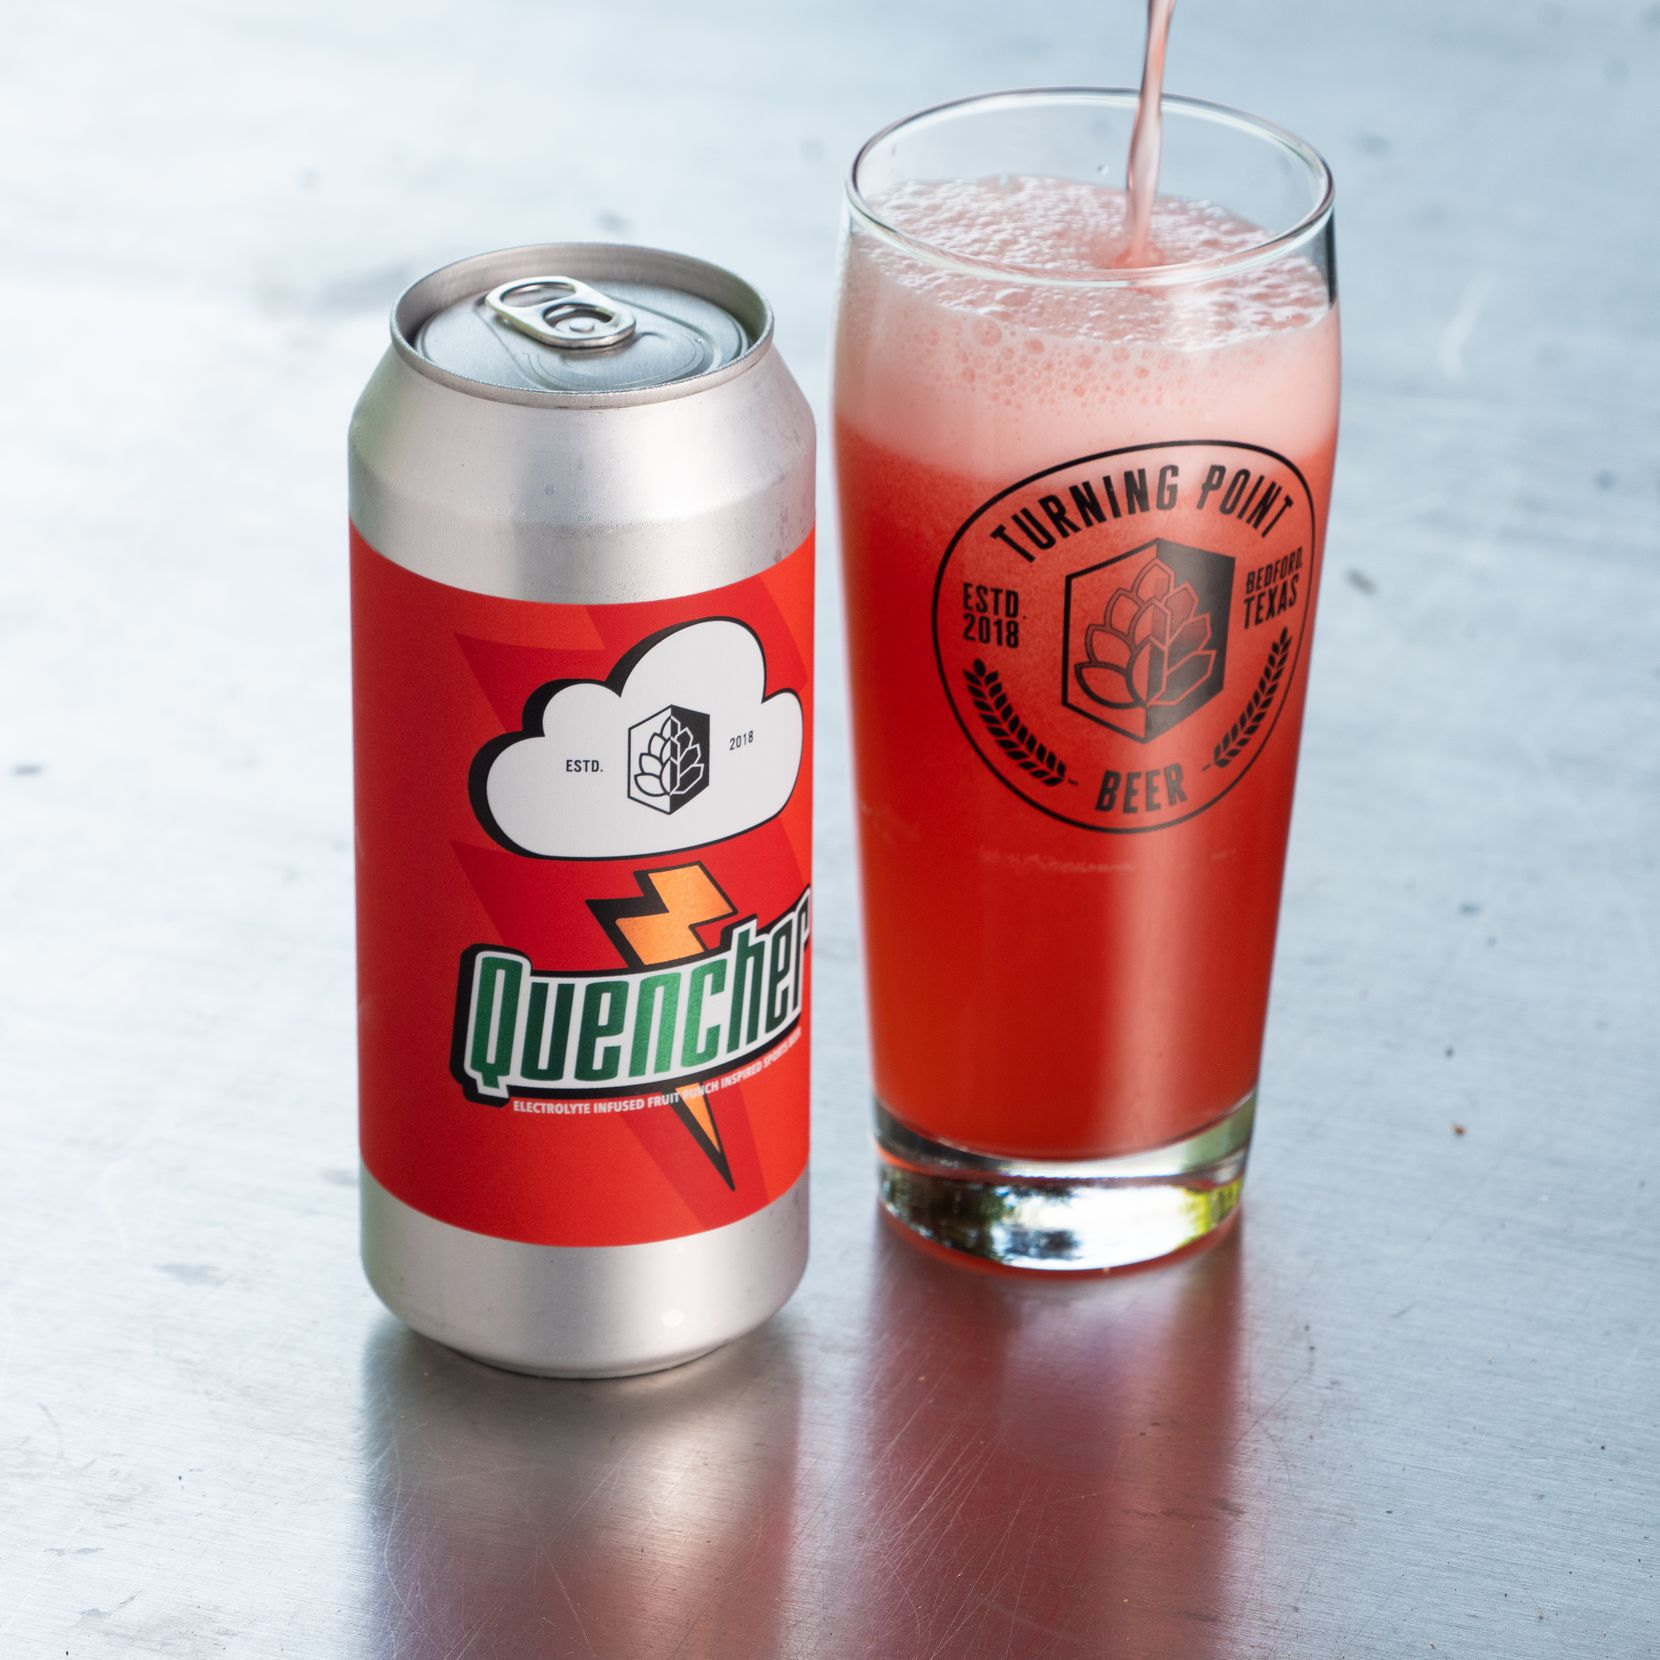 Quencher 'sports beer' from Turning Point Brewery